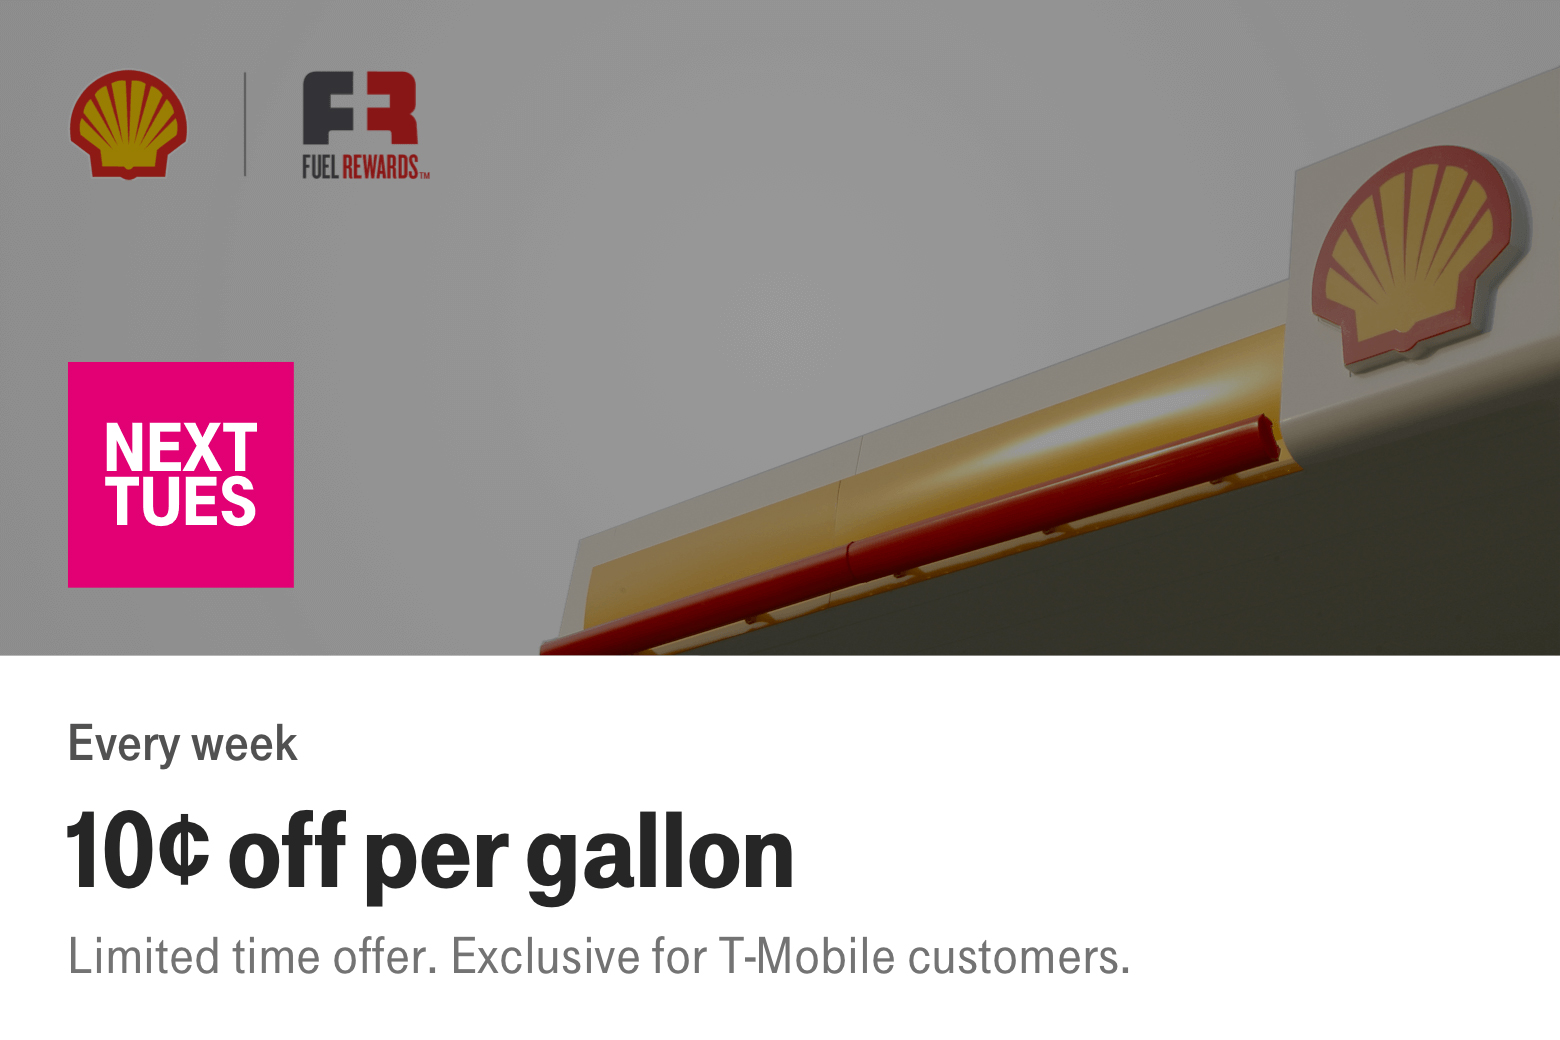 Shell. Fuel Rewards. Next Tuesday. Every Week. 10 cents off per gallon. Limited time offer. Exclusive for T-Mobile customers.